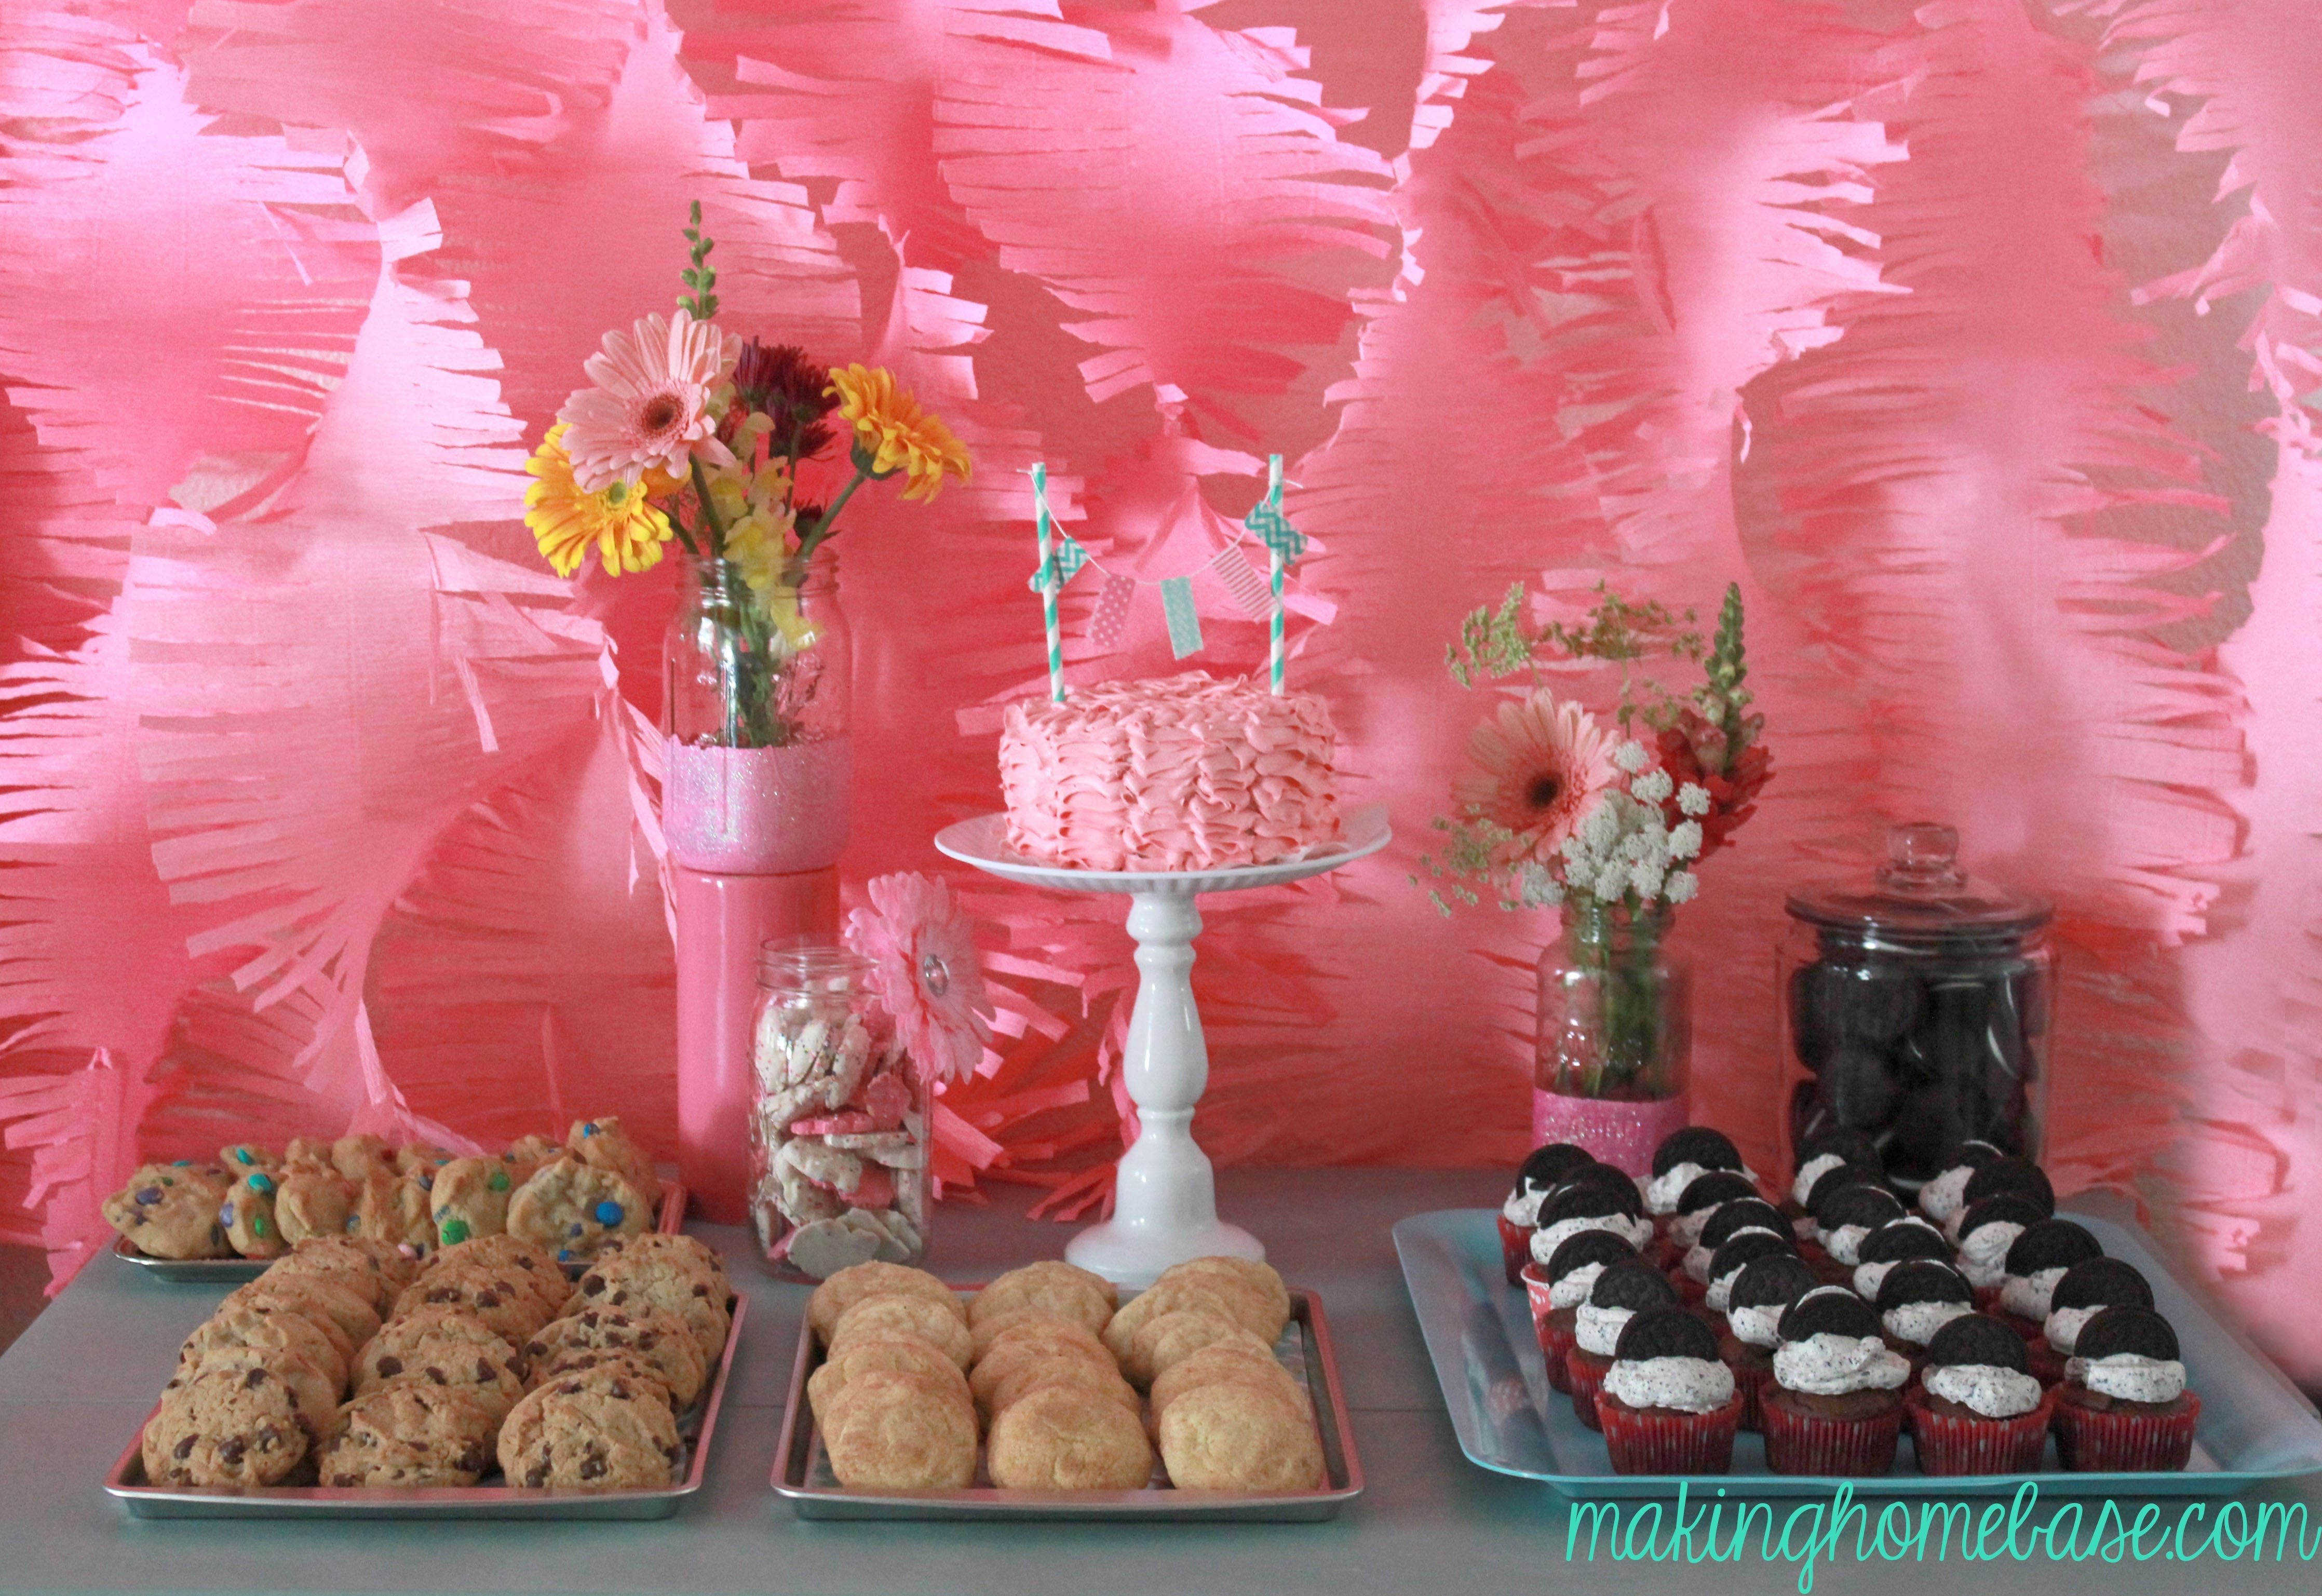 10 Great Birthday Party Ideas For 5 Year Old Girl and cookies birthday party ideas 1 2021